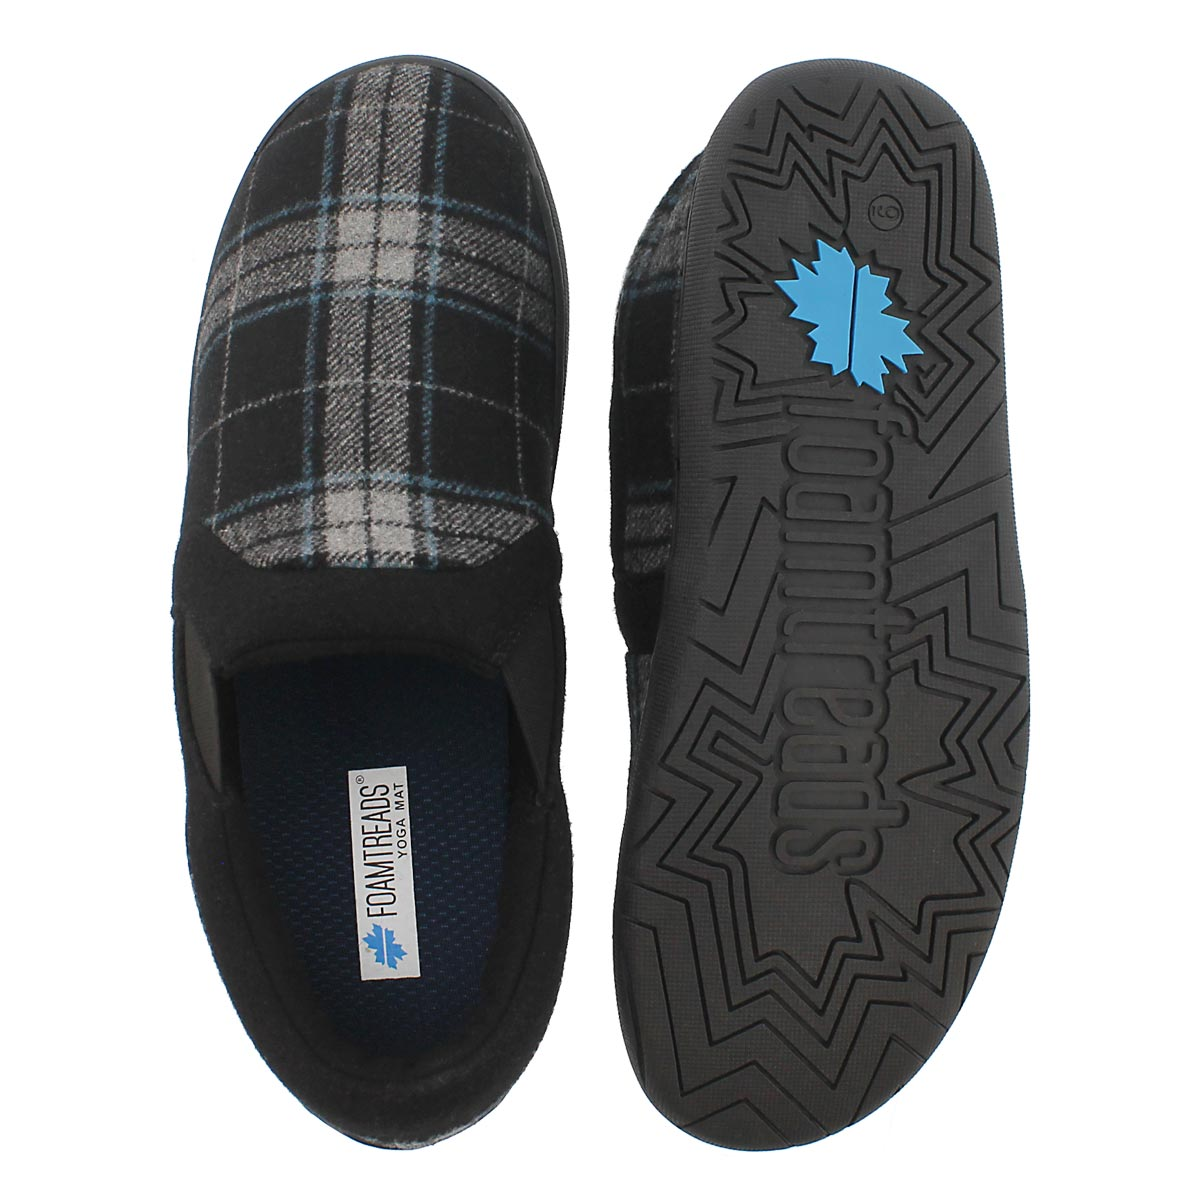 Mns James blk pld closed back slipper